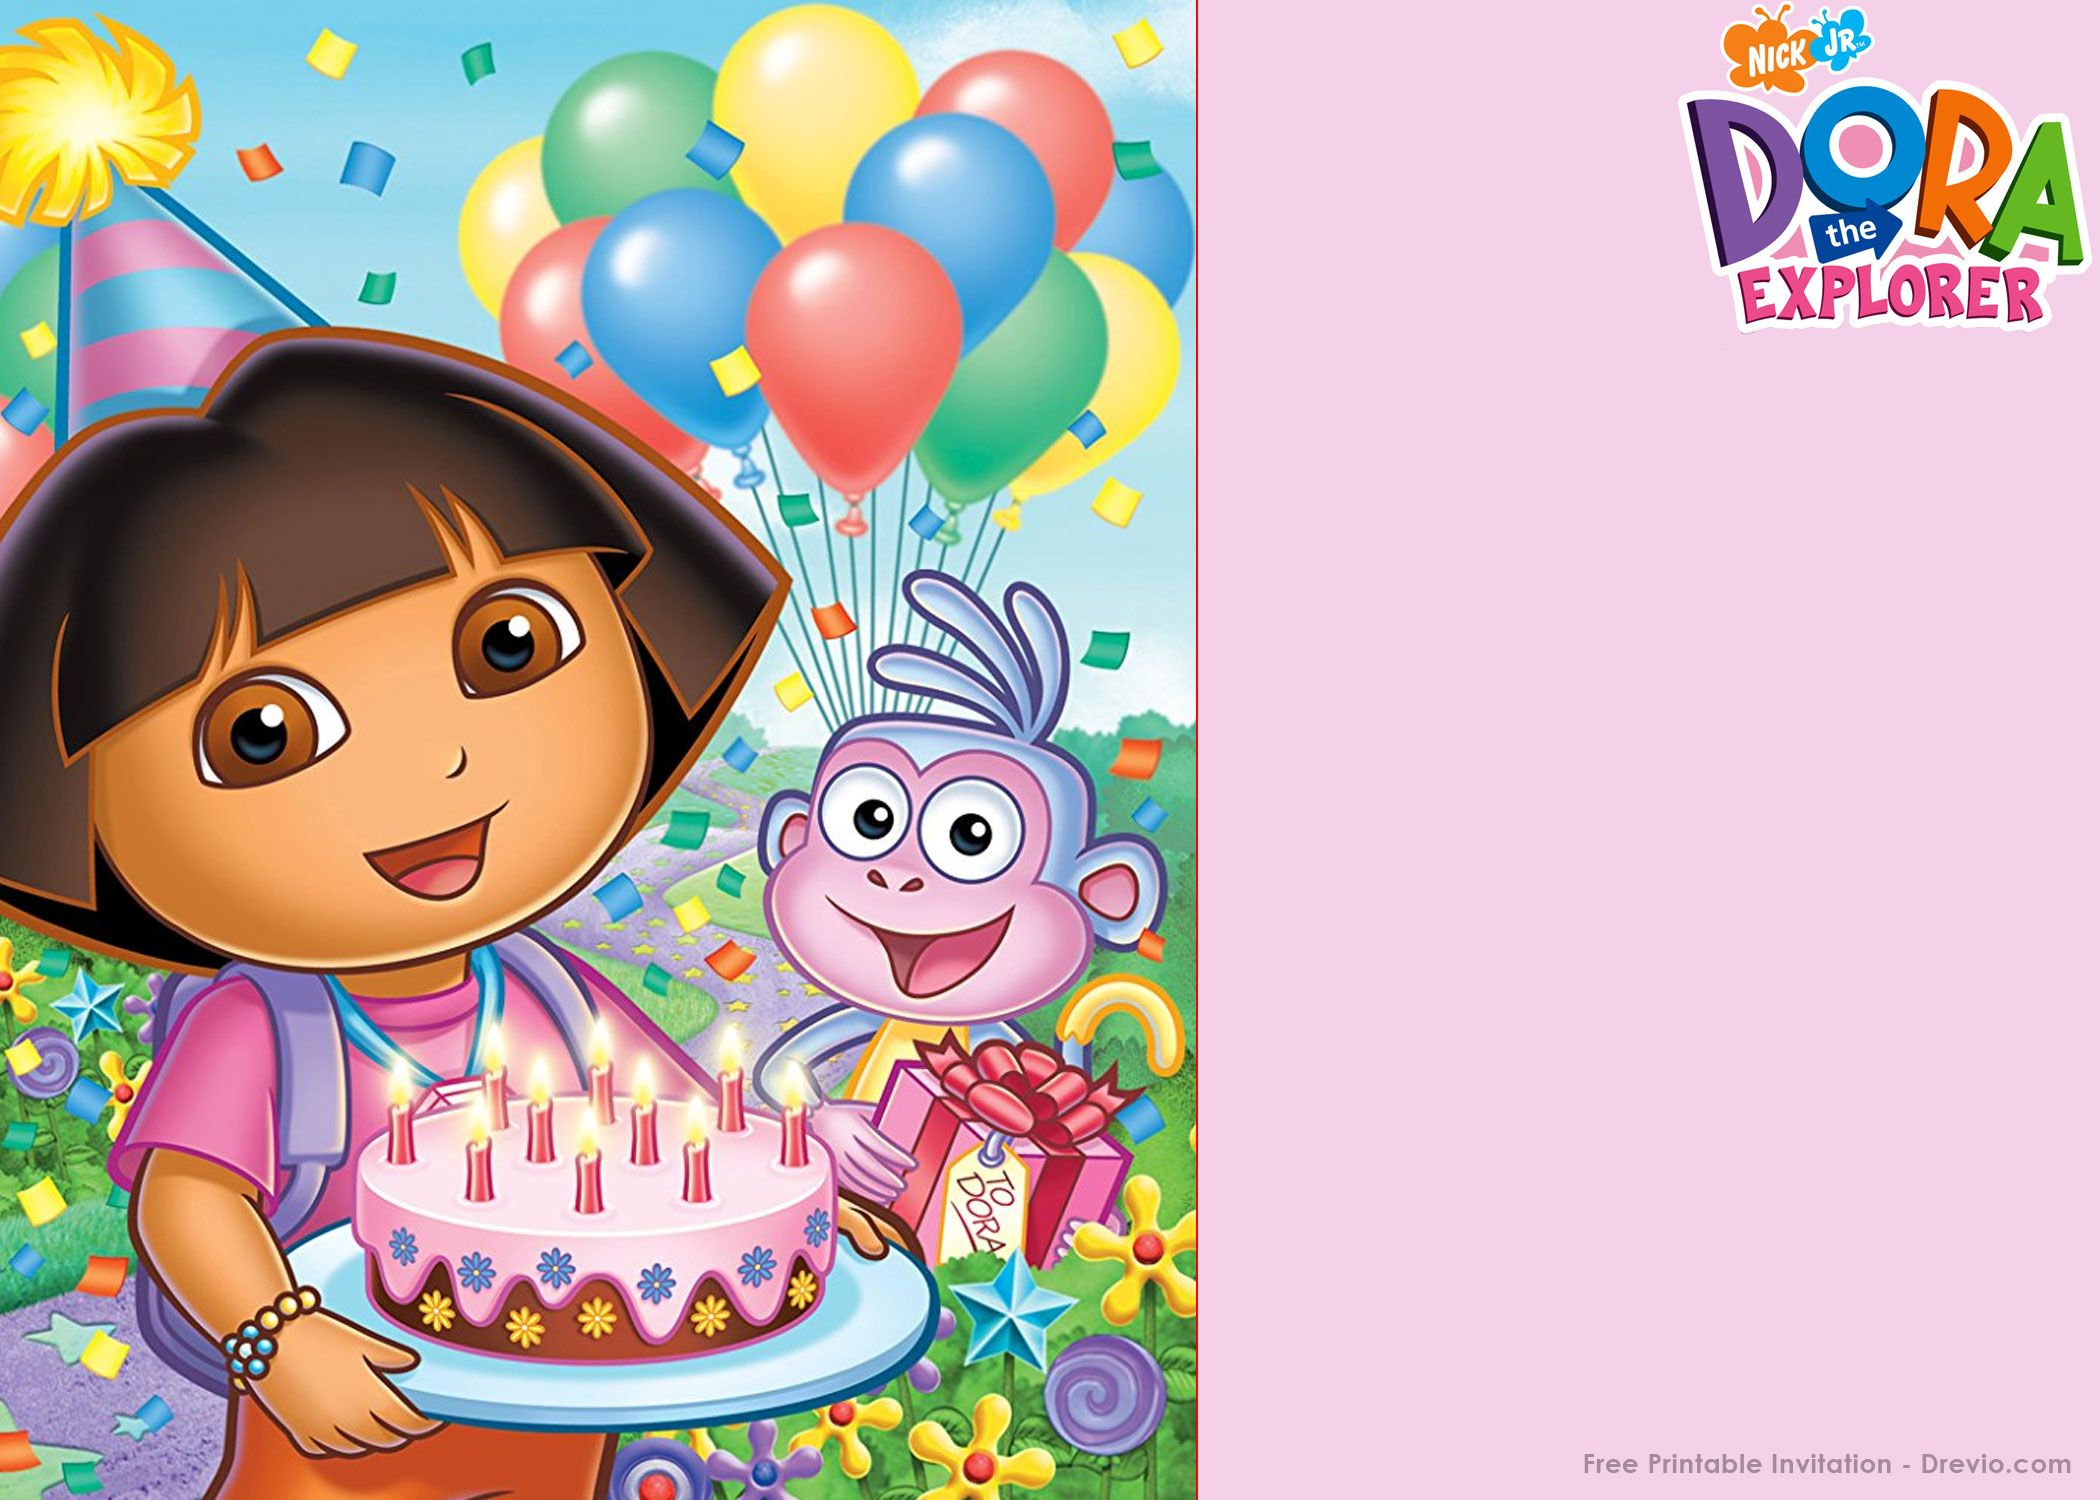 FREE Printable Dora the Explorer Party Invitation Template | Drevio Invitations Design